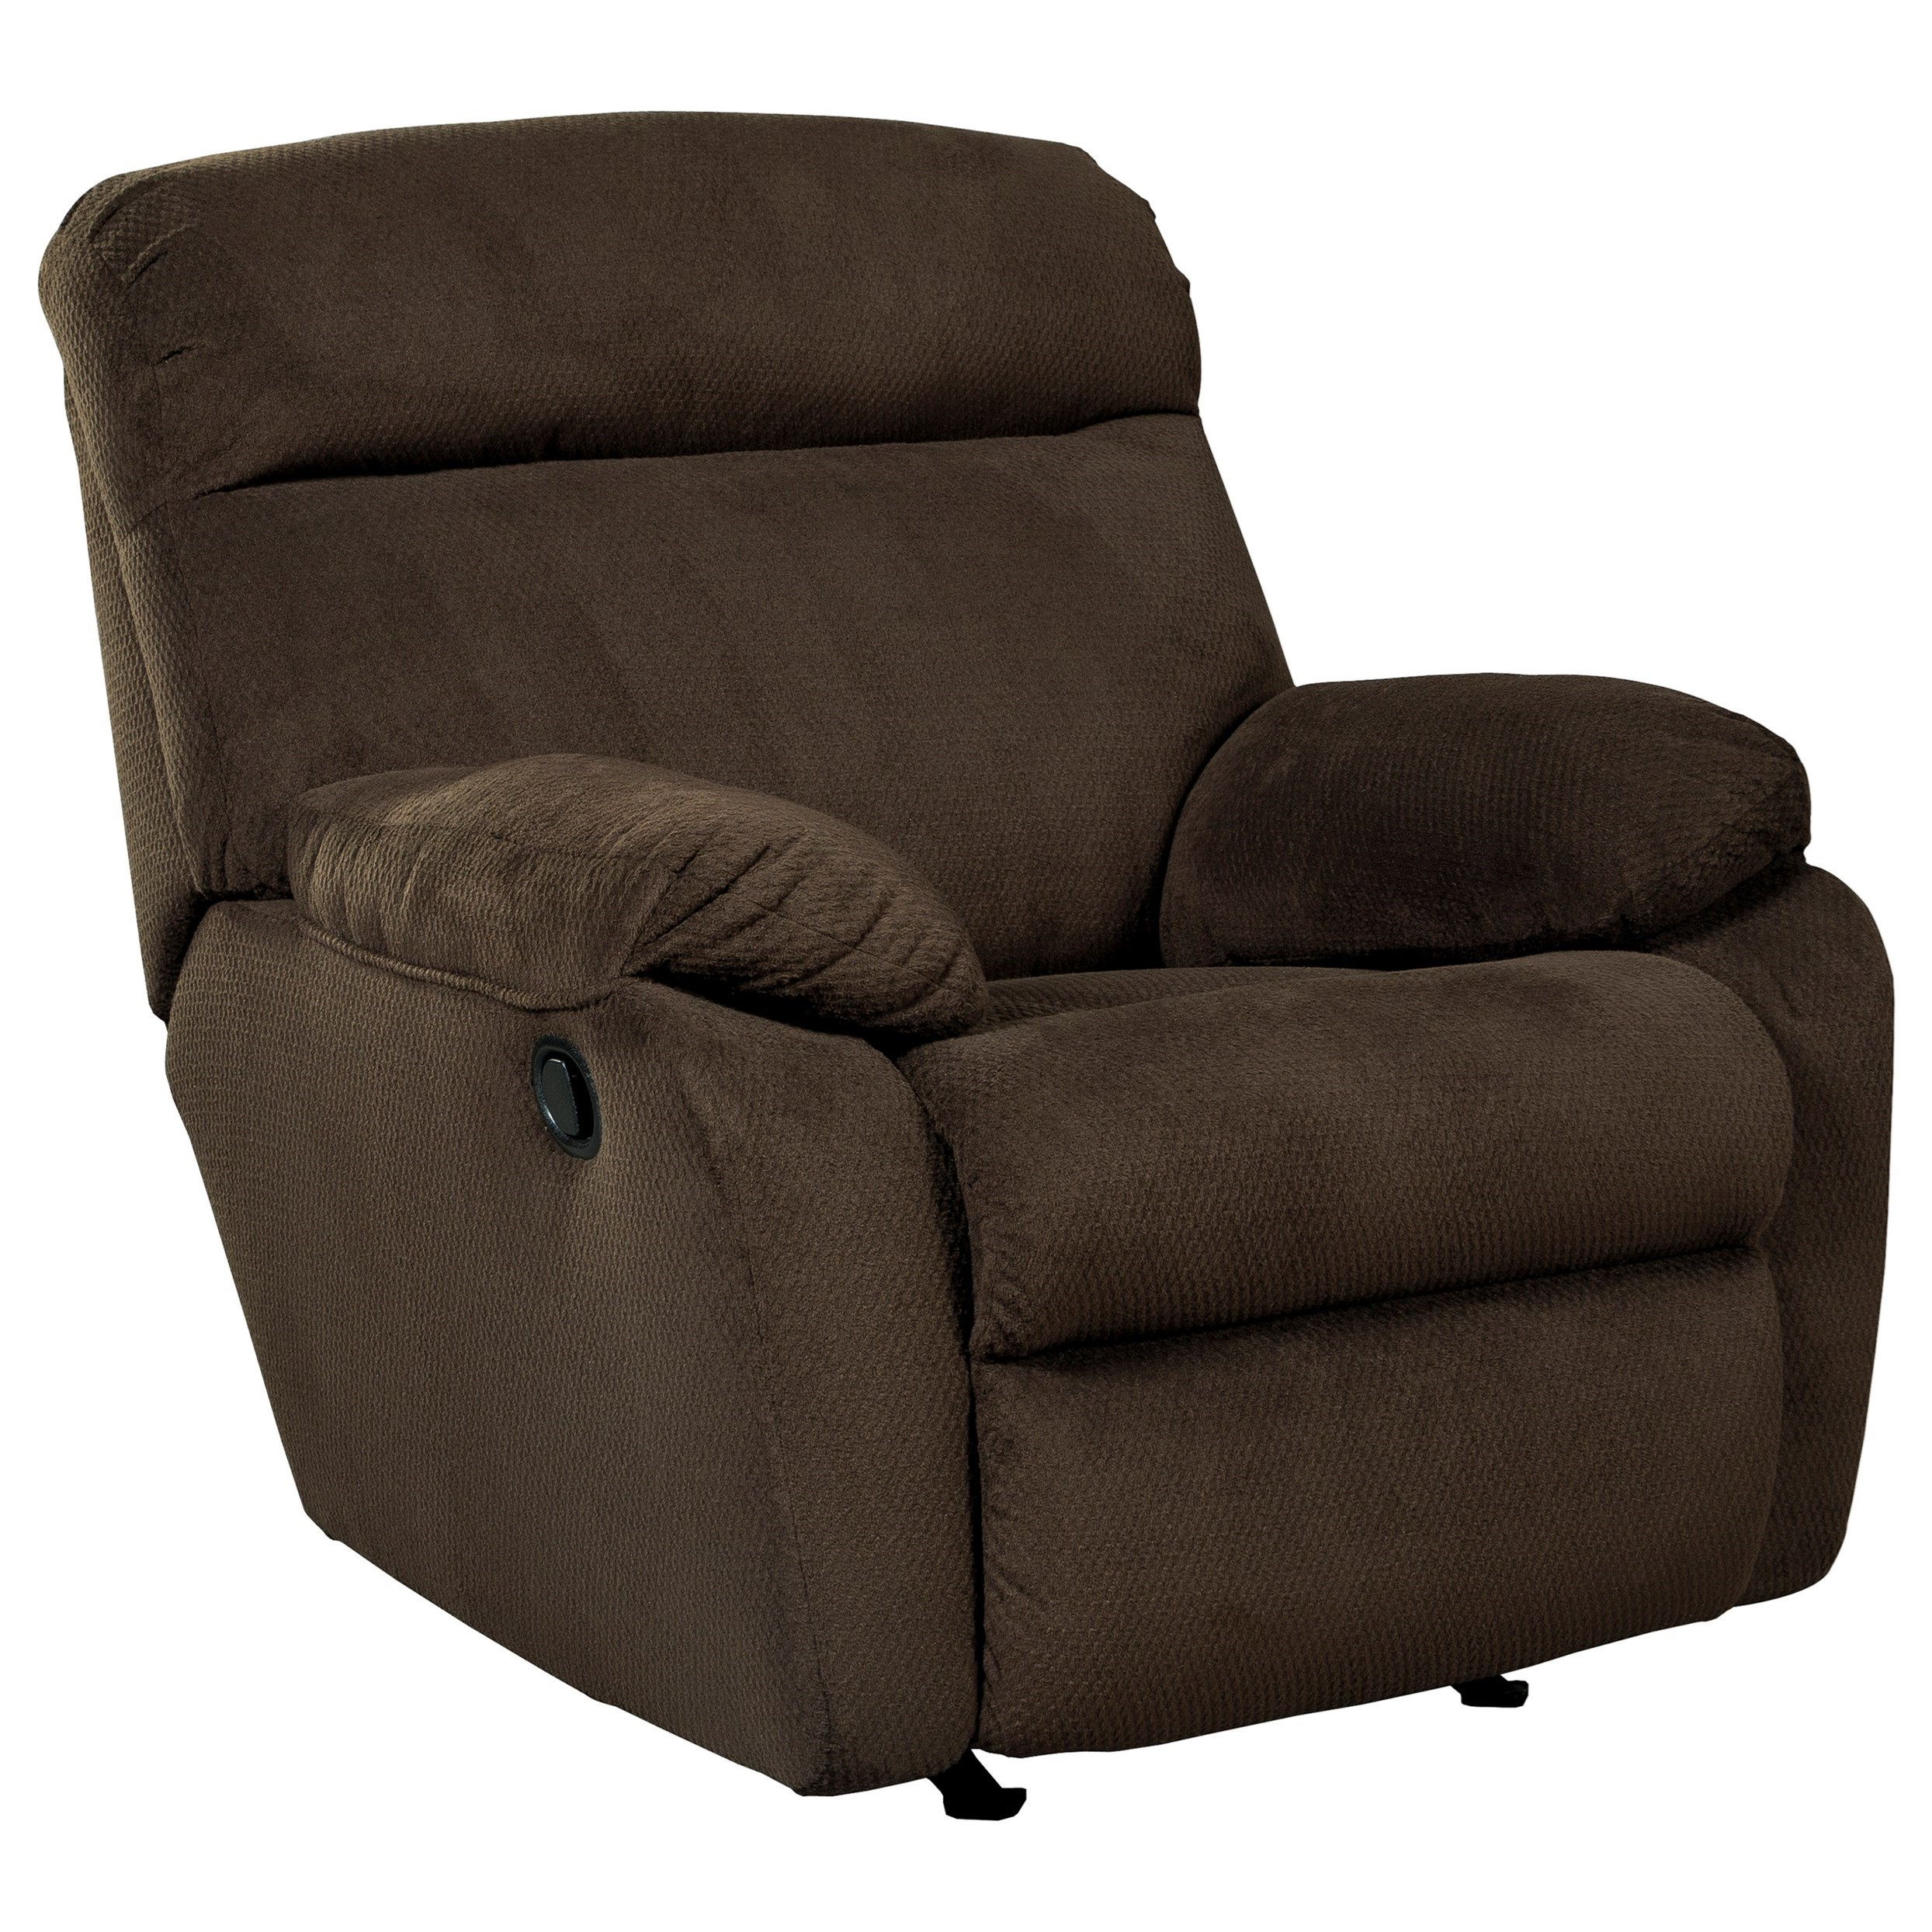 Benchcraft Demarion Rocker Recliner - Item Number: 5230325